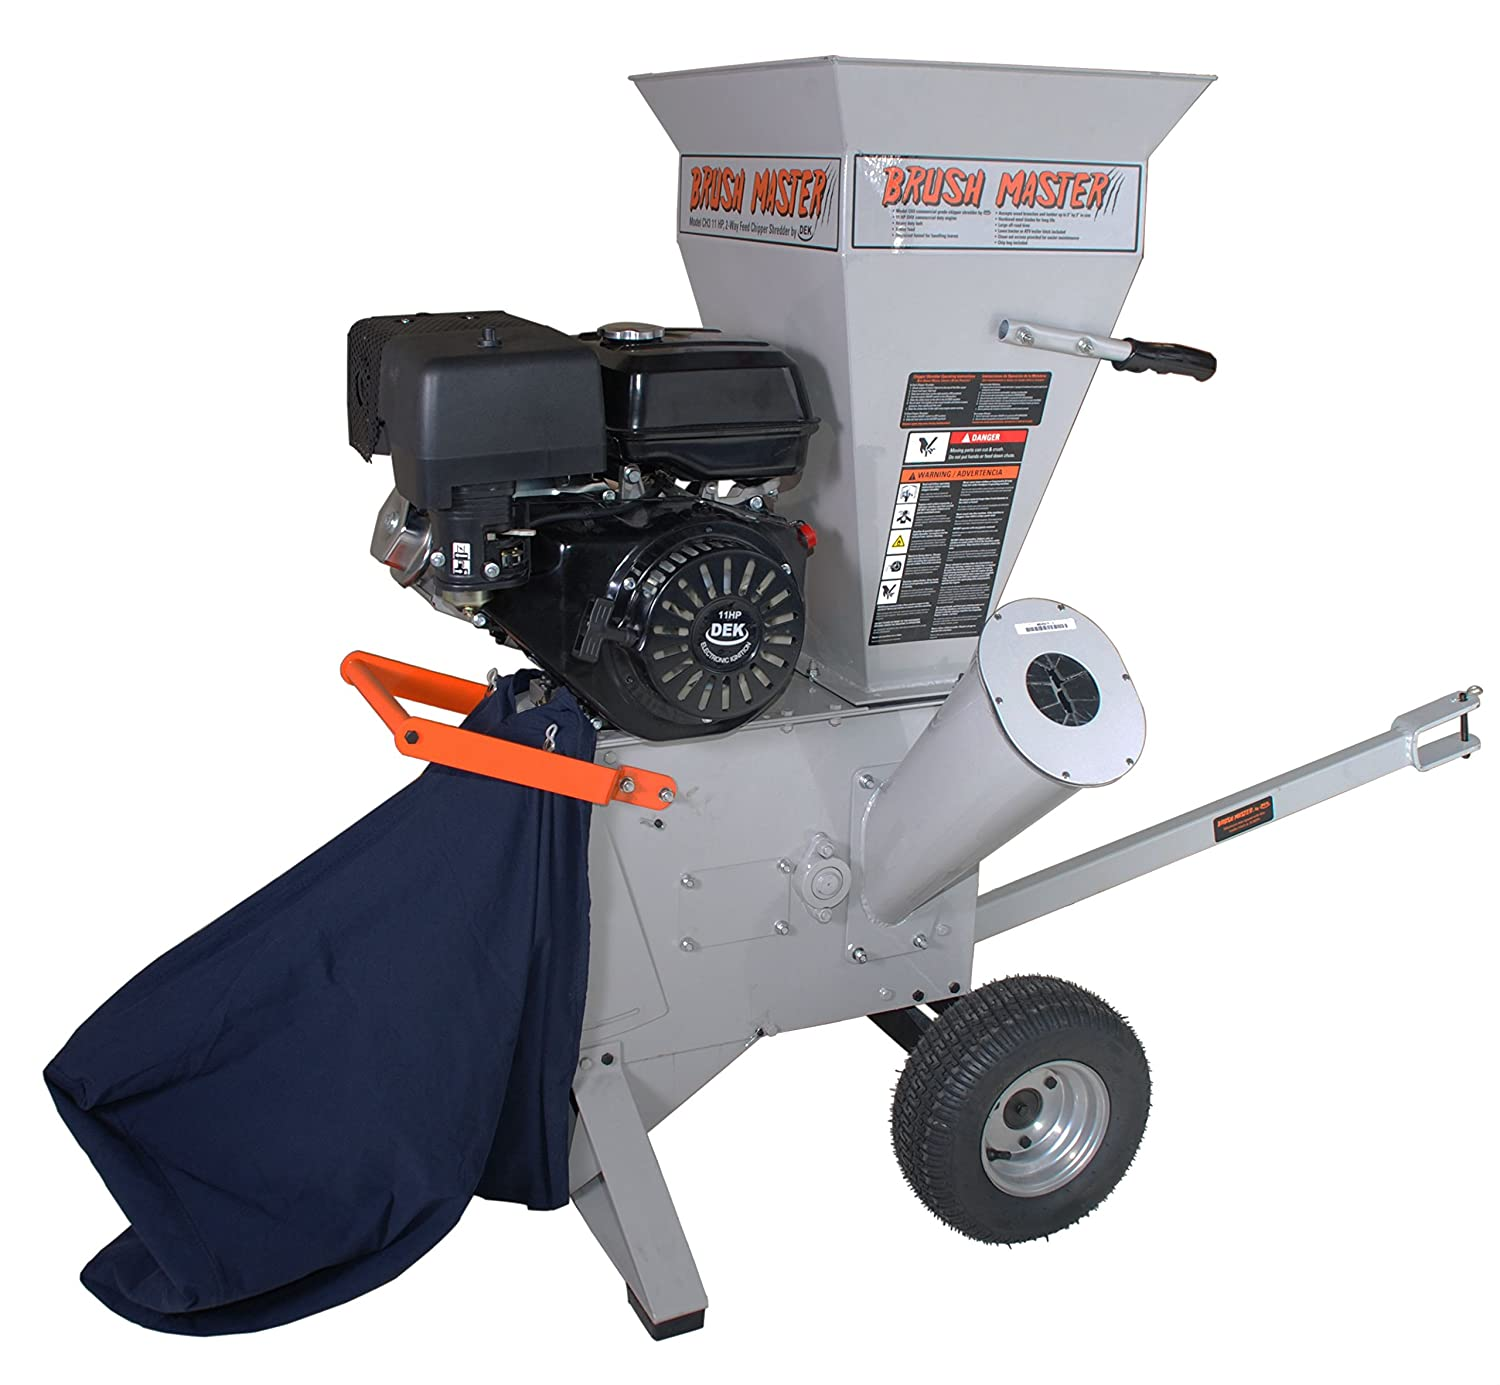 brush master chipper shredder reviews read our in depth analysis